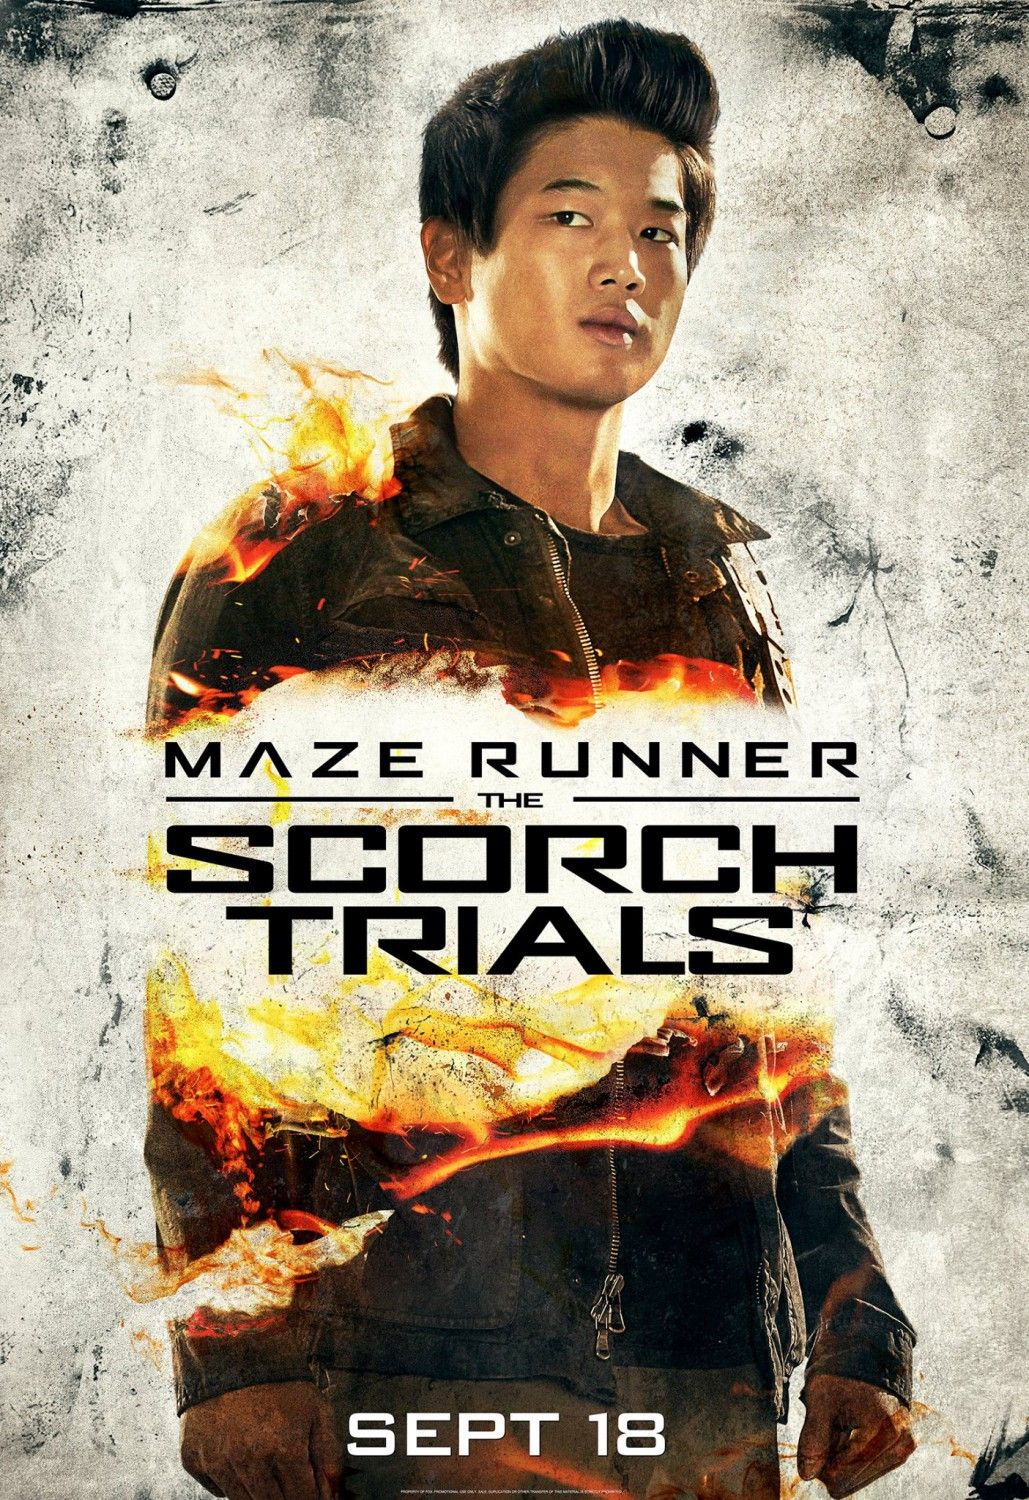 Ki Hong Lee - The Scorch Trials poster. Looking forward to this coming out. X